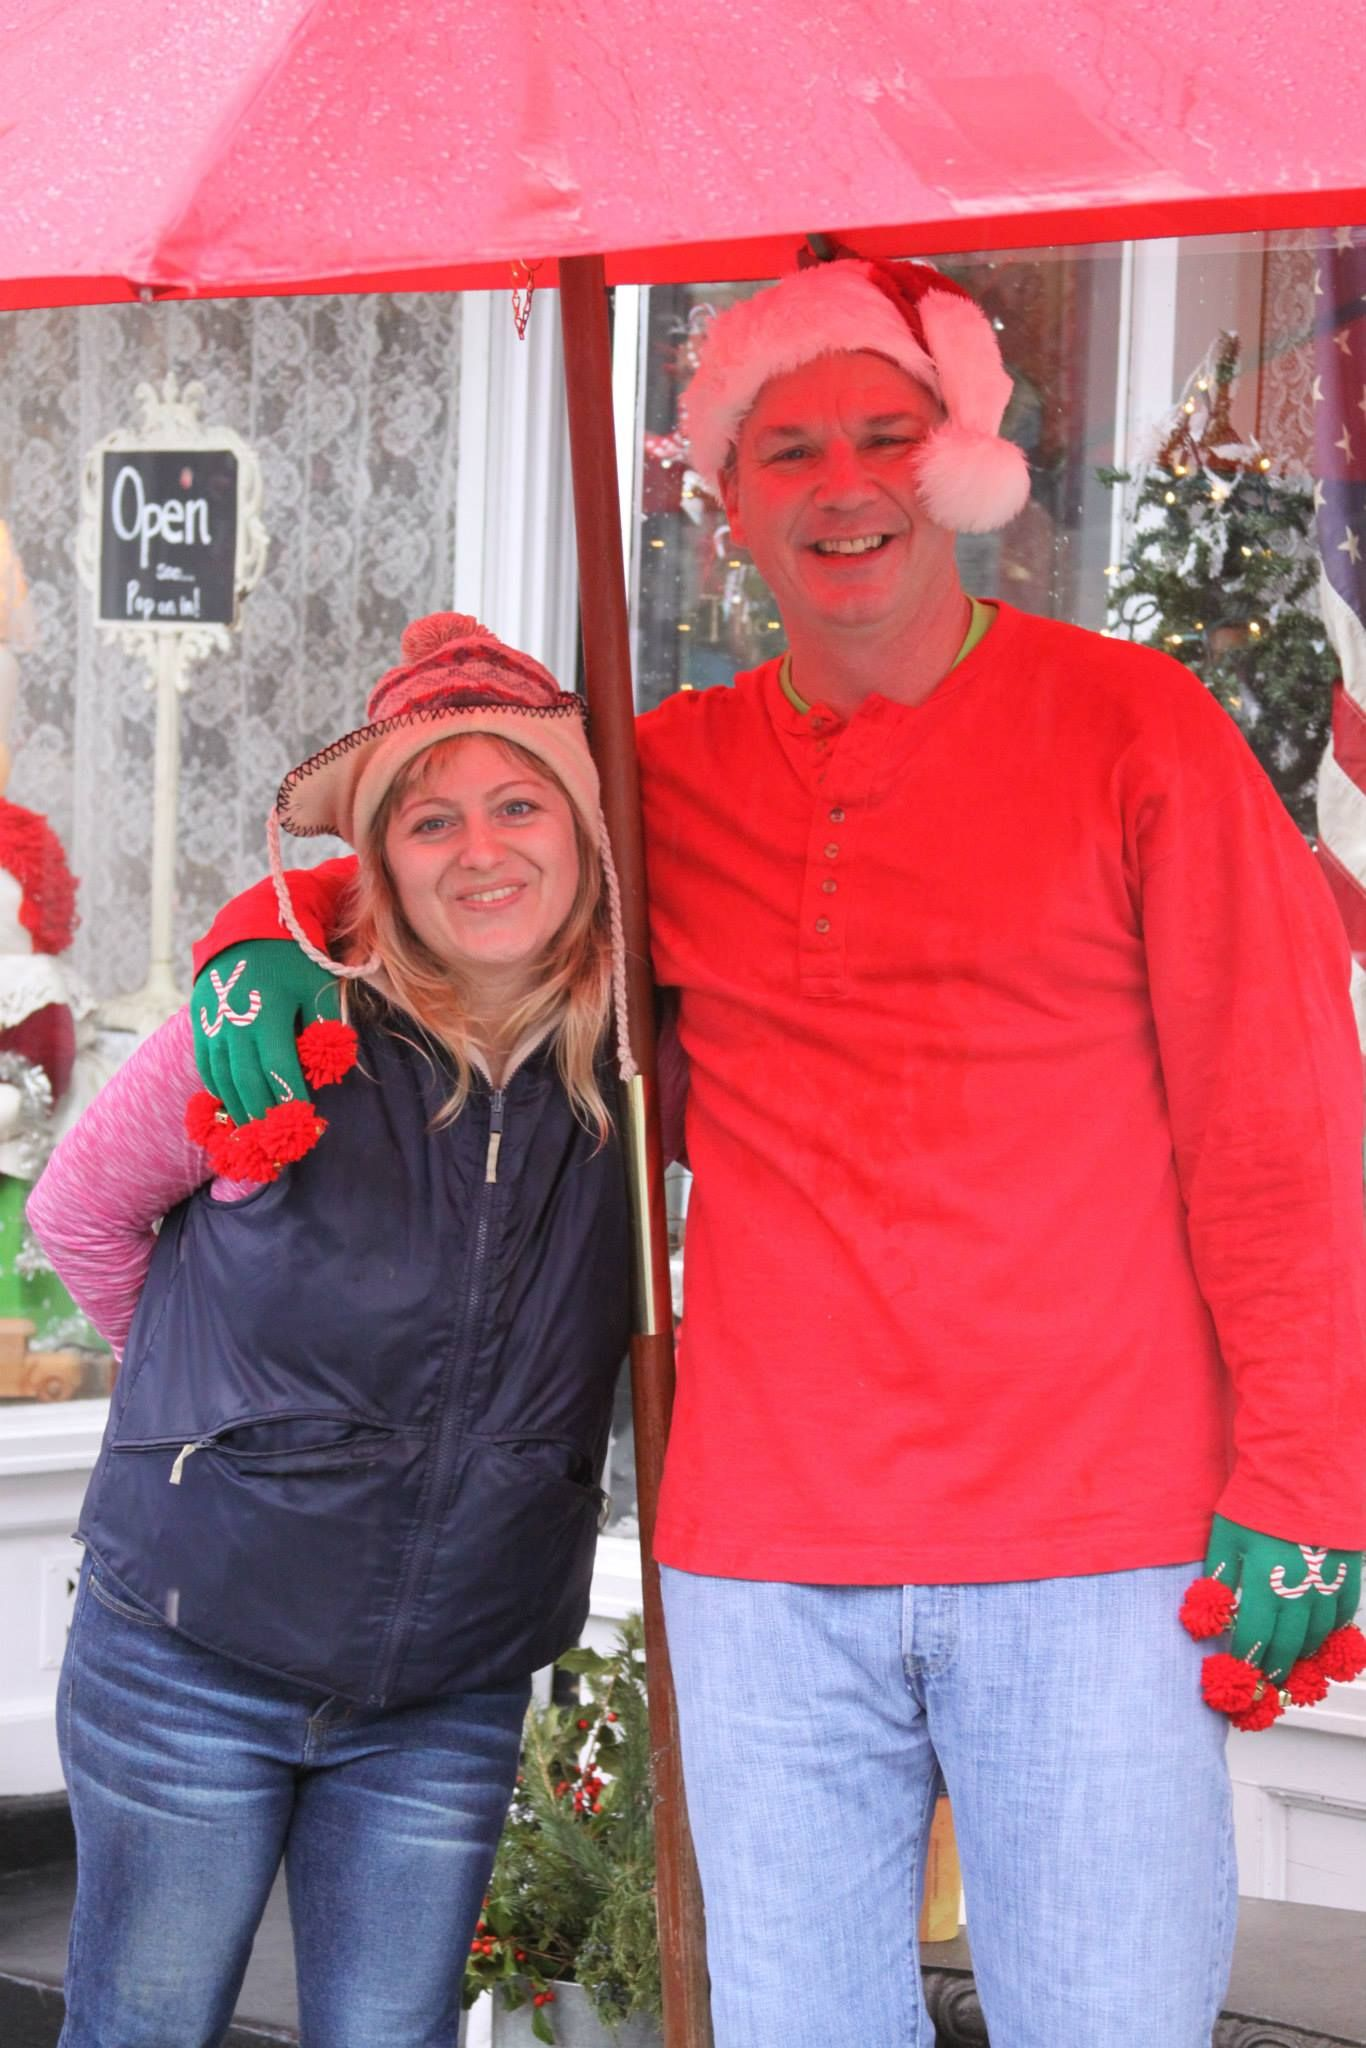 INSURANCE OUTFITTERS is pleased to share our photos of Shepherdstown's annual Christmas parade. Locally Inspired Insurance® Since March 3, 1989! www.InsuranceOutfitters.com